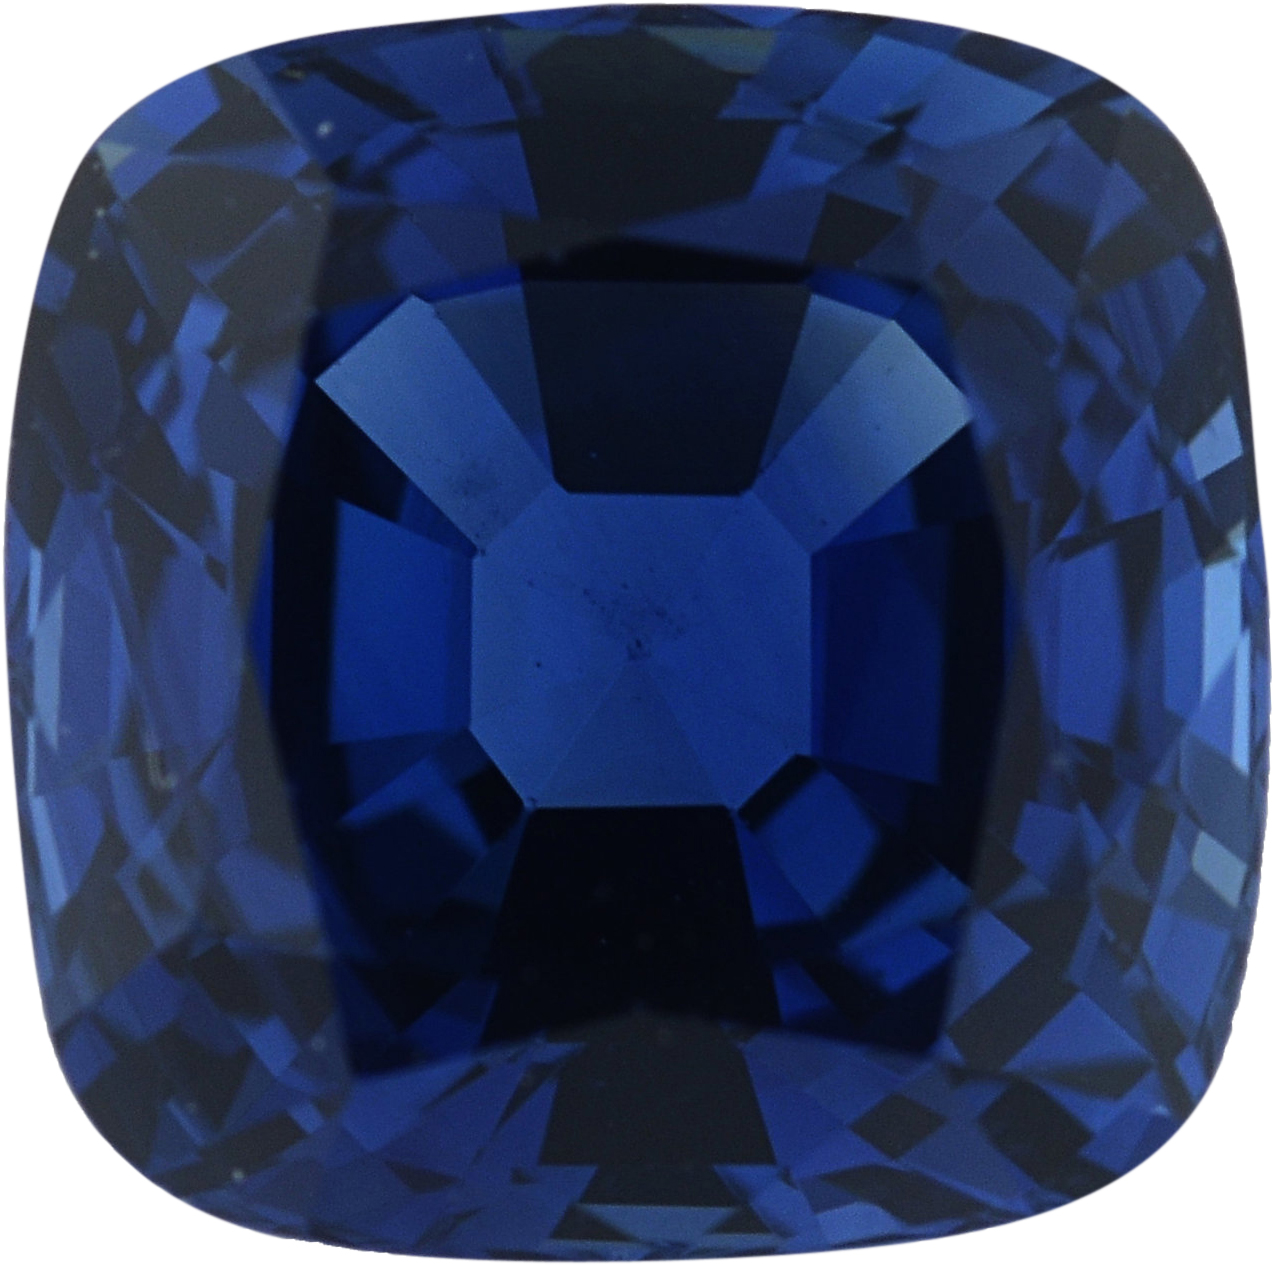 7.18 x 7.18 mm, Blue Loose Sapphire Gemstone in Antique Square Cut, Violetish Blue, 2.39 carats